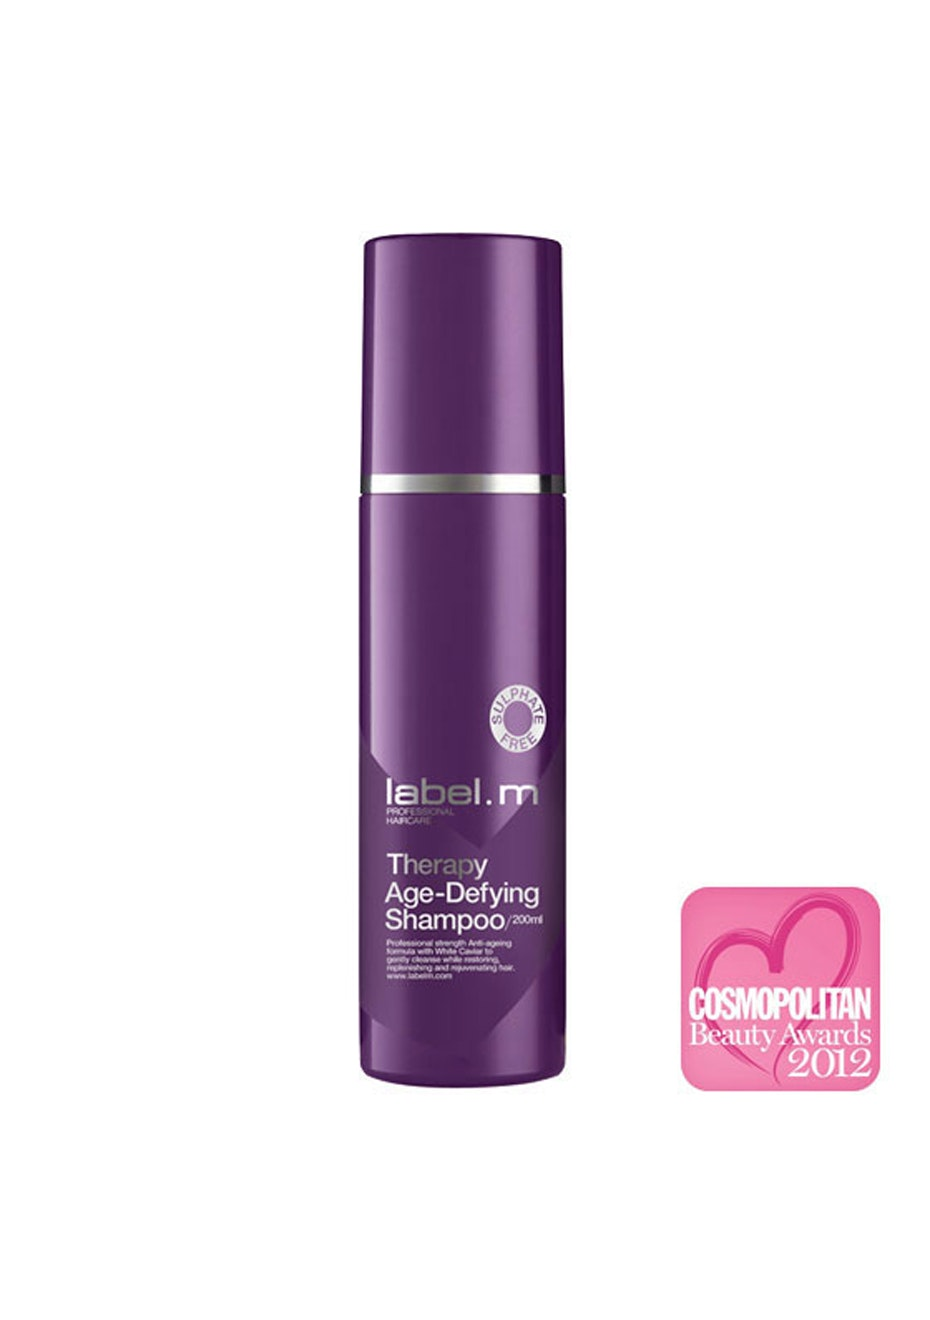 label.m - Therapy Age-Defying Shampoo 200ml